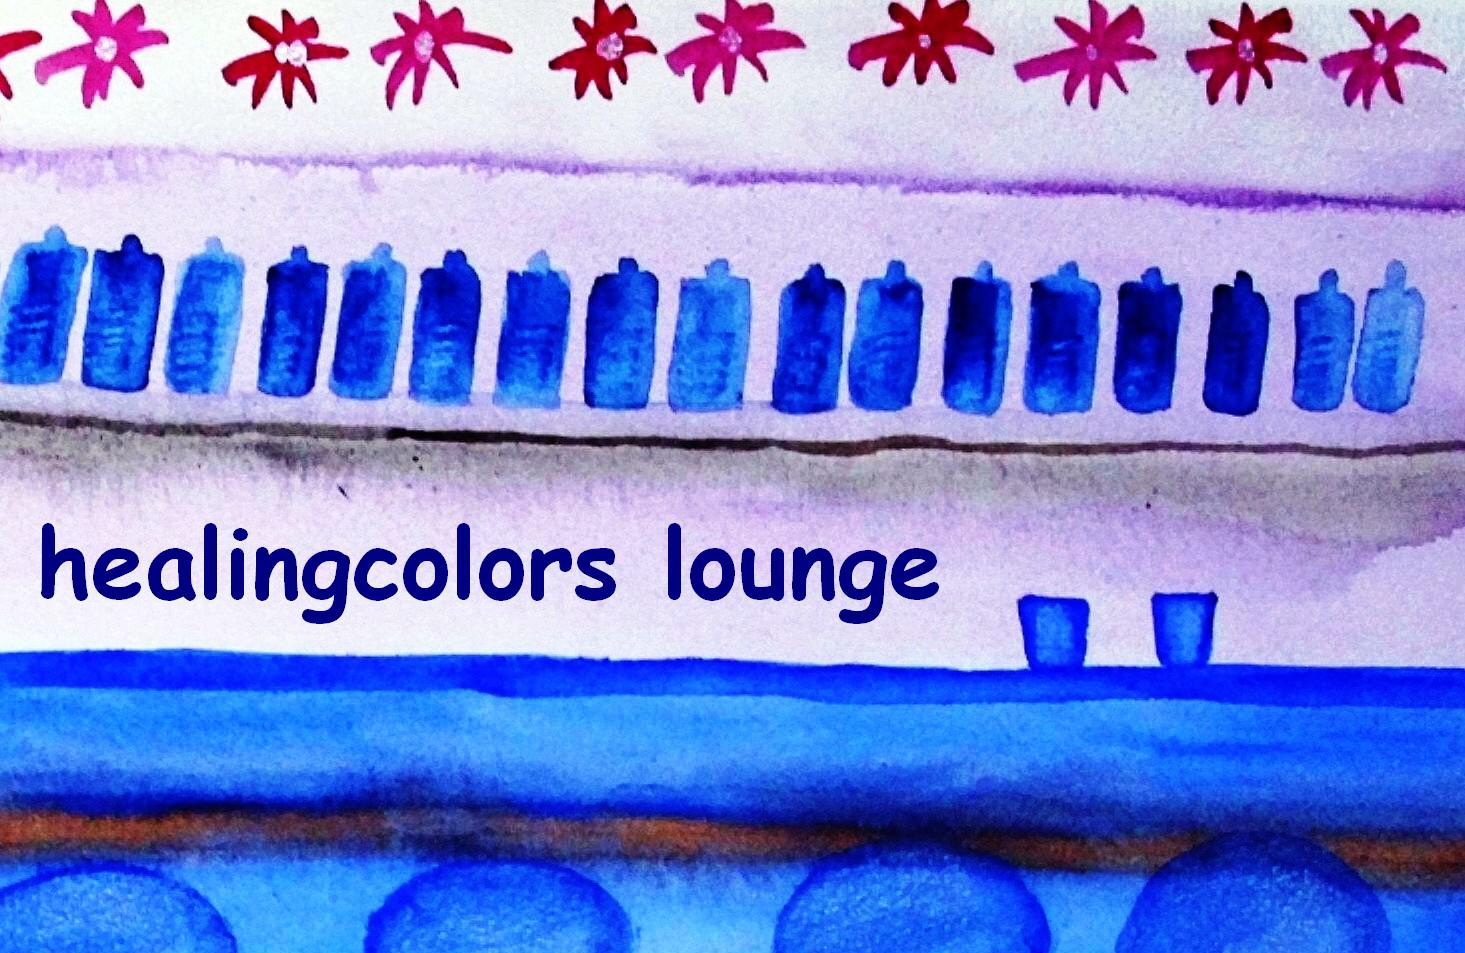 Welcome to healingcolors lounge © 2017